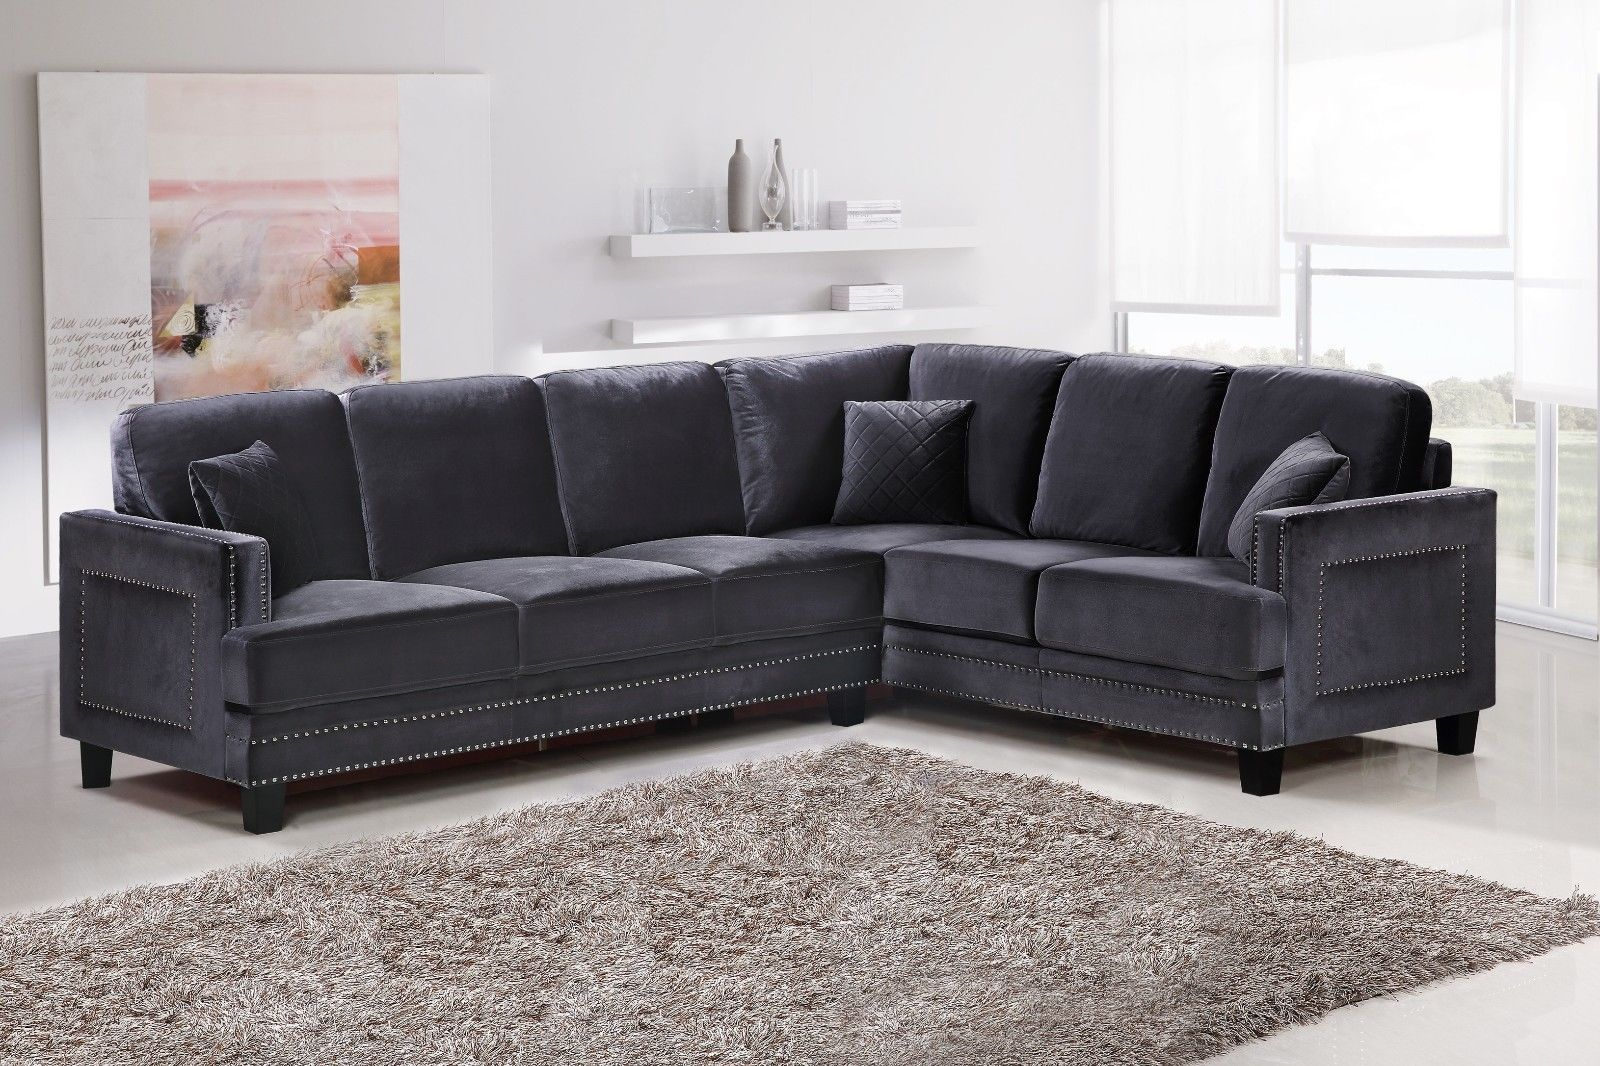 Meridian 655 Grey Velvet Sectional Left Hand Facing Contemporary Style